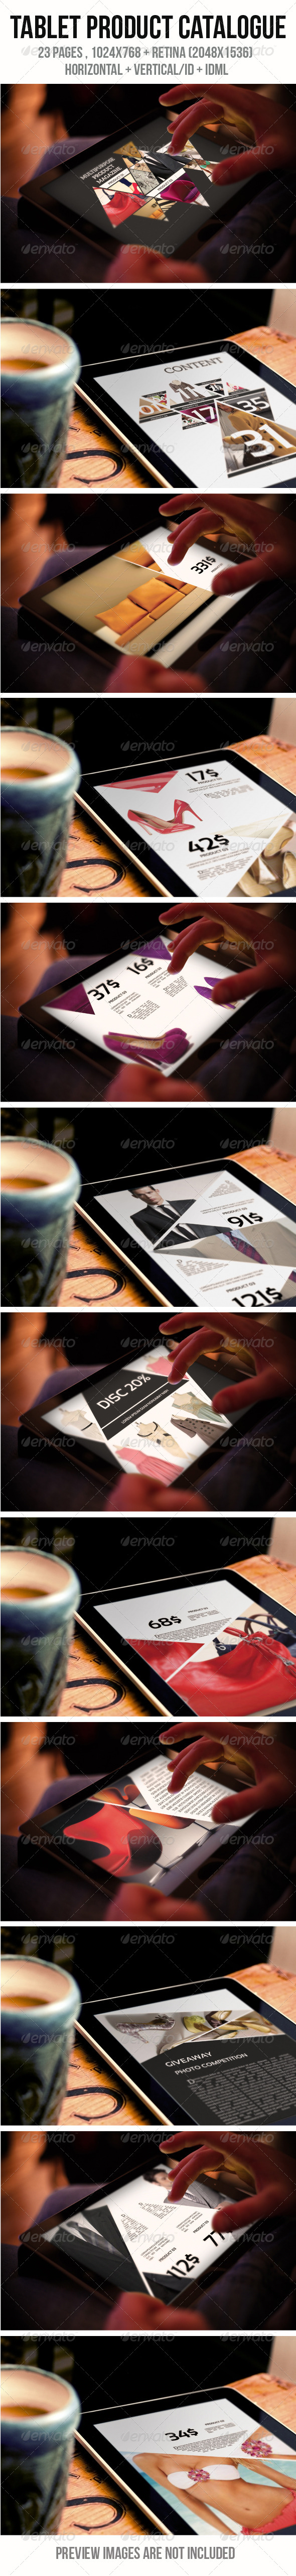 iPad & Tablet Product Catalogue - Digital Magazines ePublishing